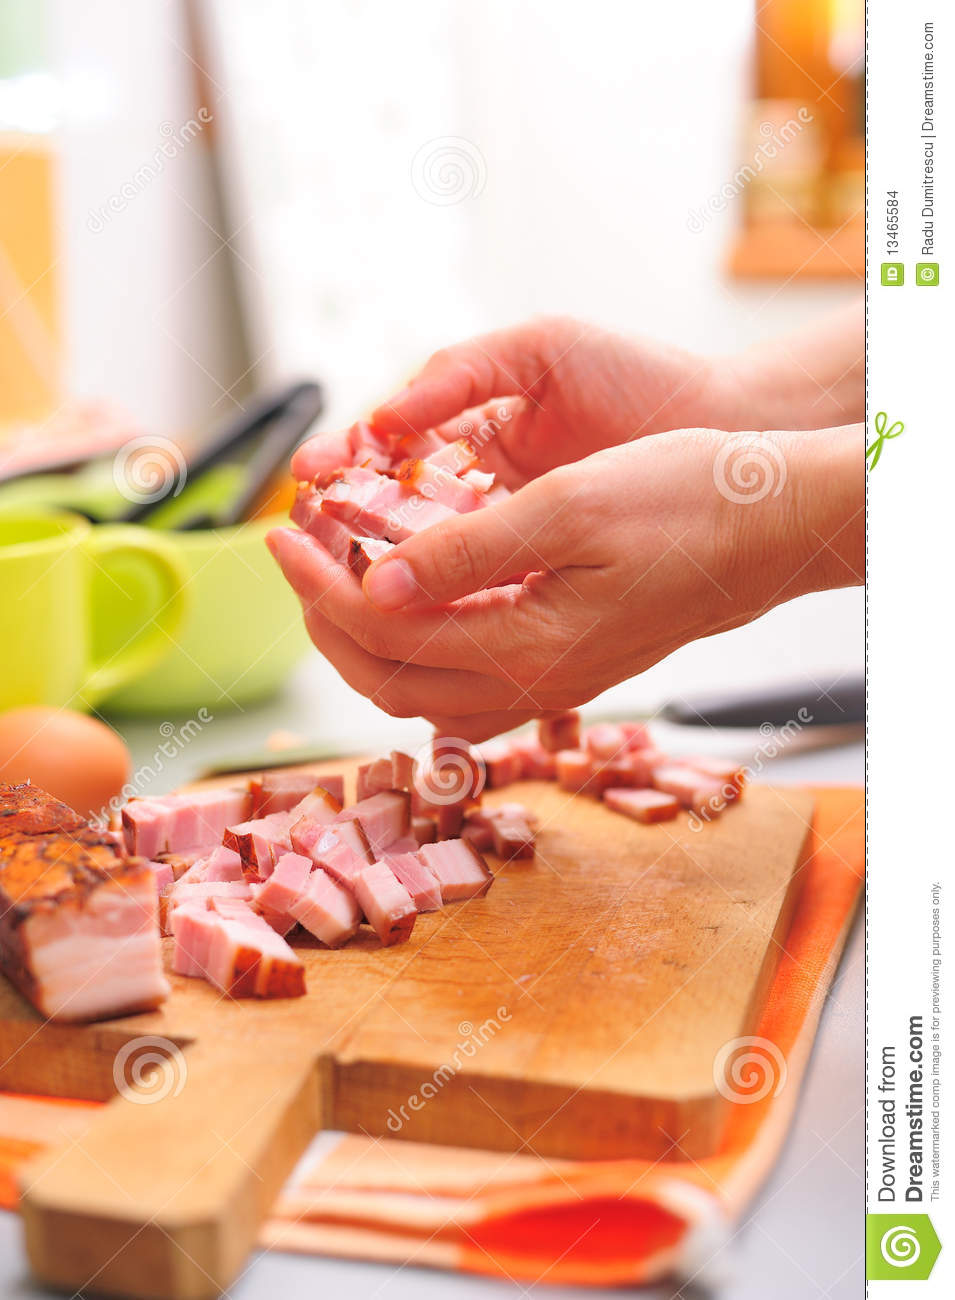 Hands With Food Stock Images - Image: 13465584